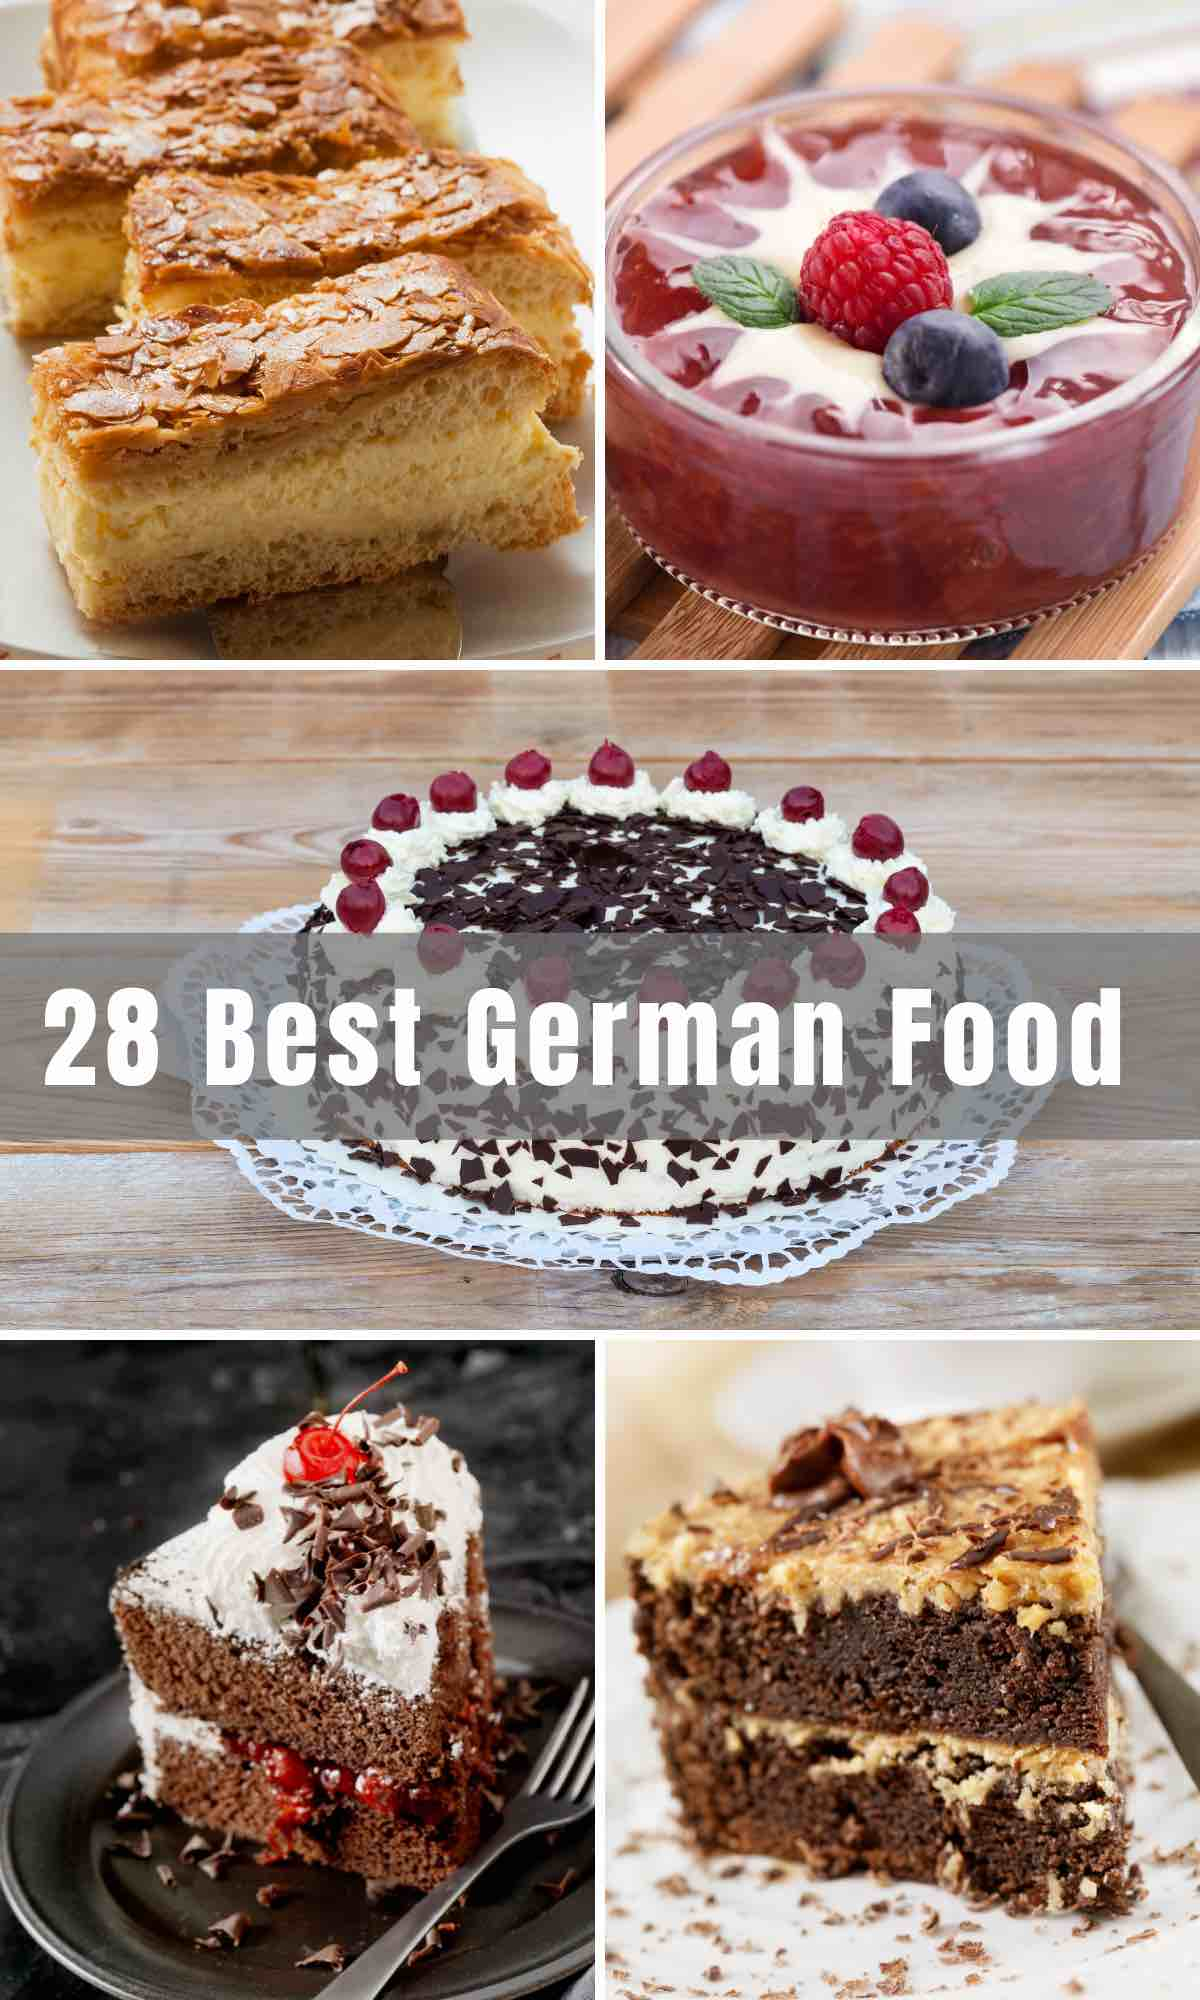 German Food is famously wholesome, hearty, and filling - the ultimate comfort food! There are so many delicious dishes in German cuisine besides sauerkraut. We've rounded up 28 of the best German recipes, and now you can enjoy them at home any time of the year.